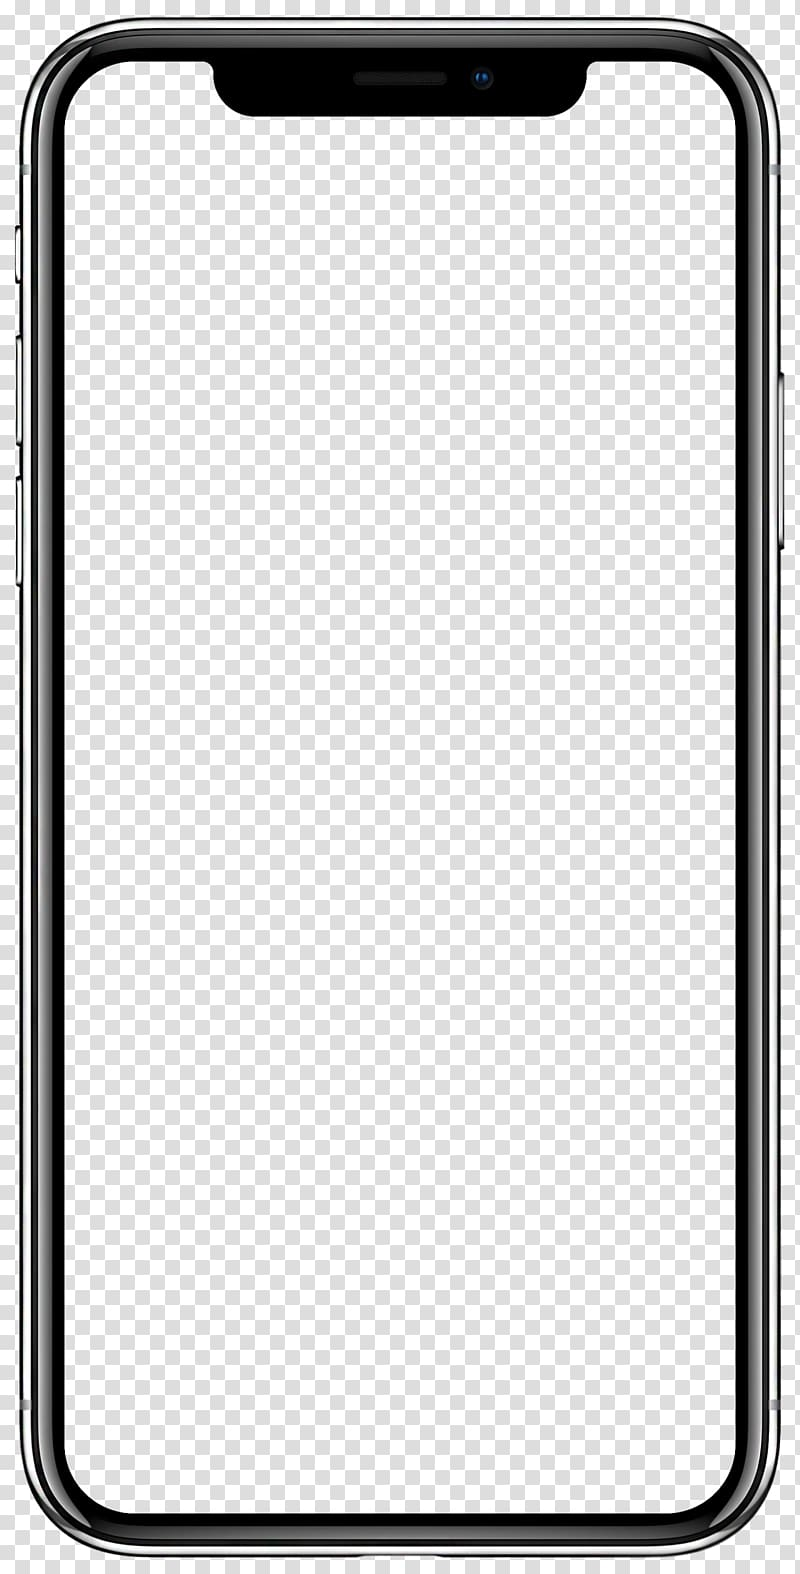 IPhone frame illustration, iPhone X App Store Apple iOS 11.